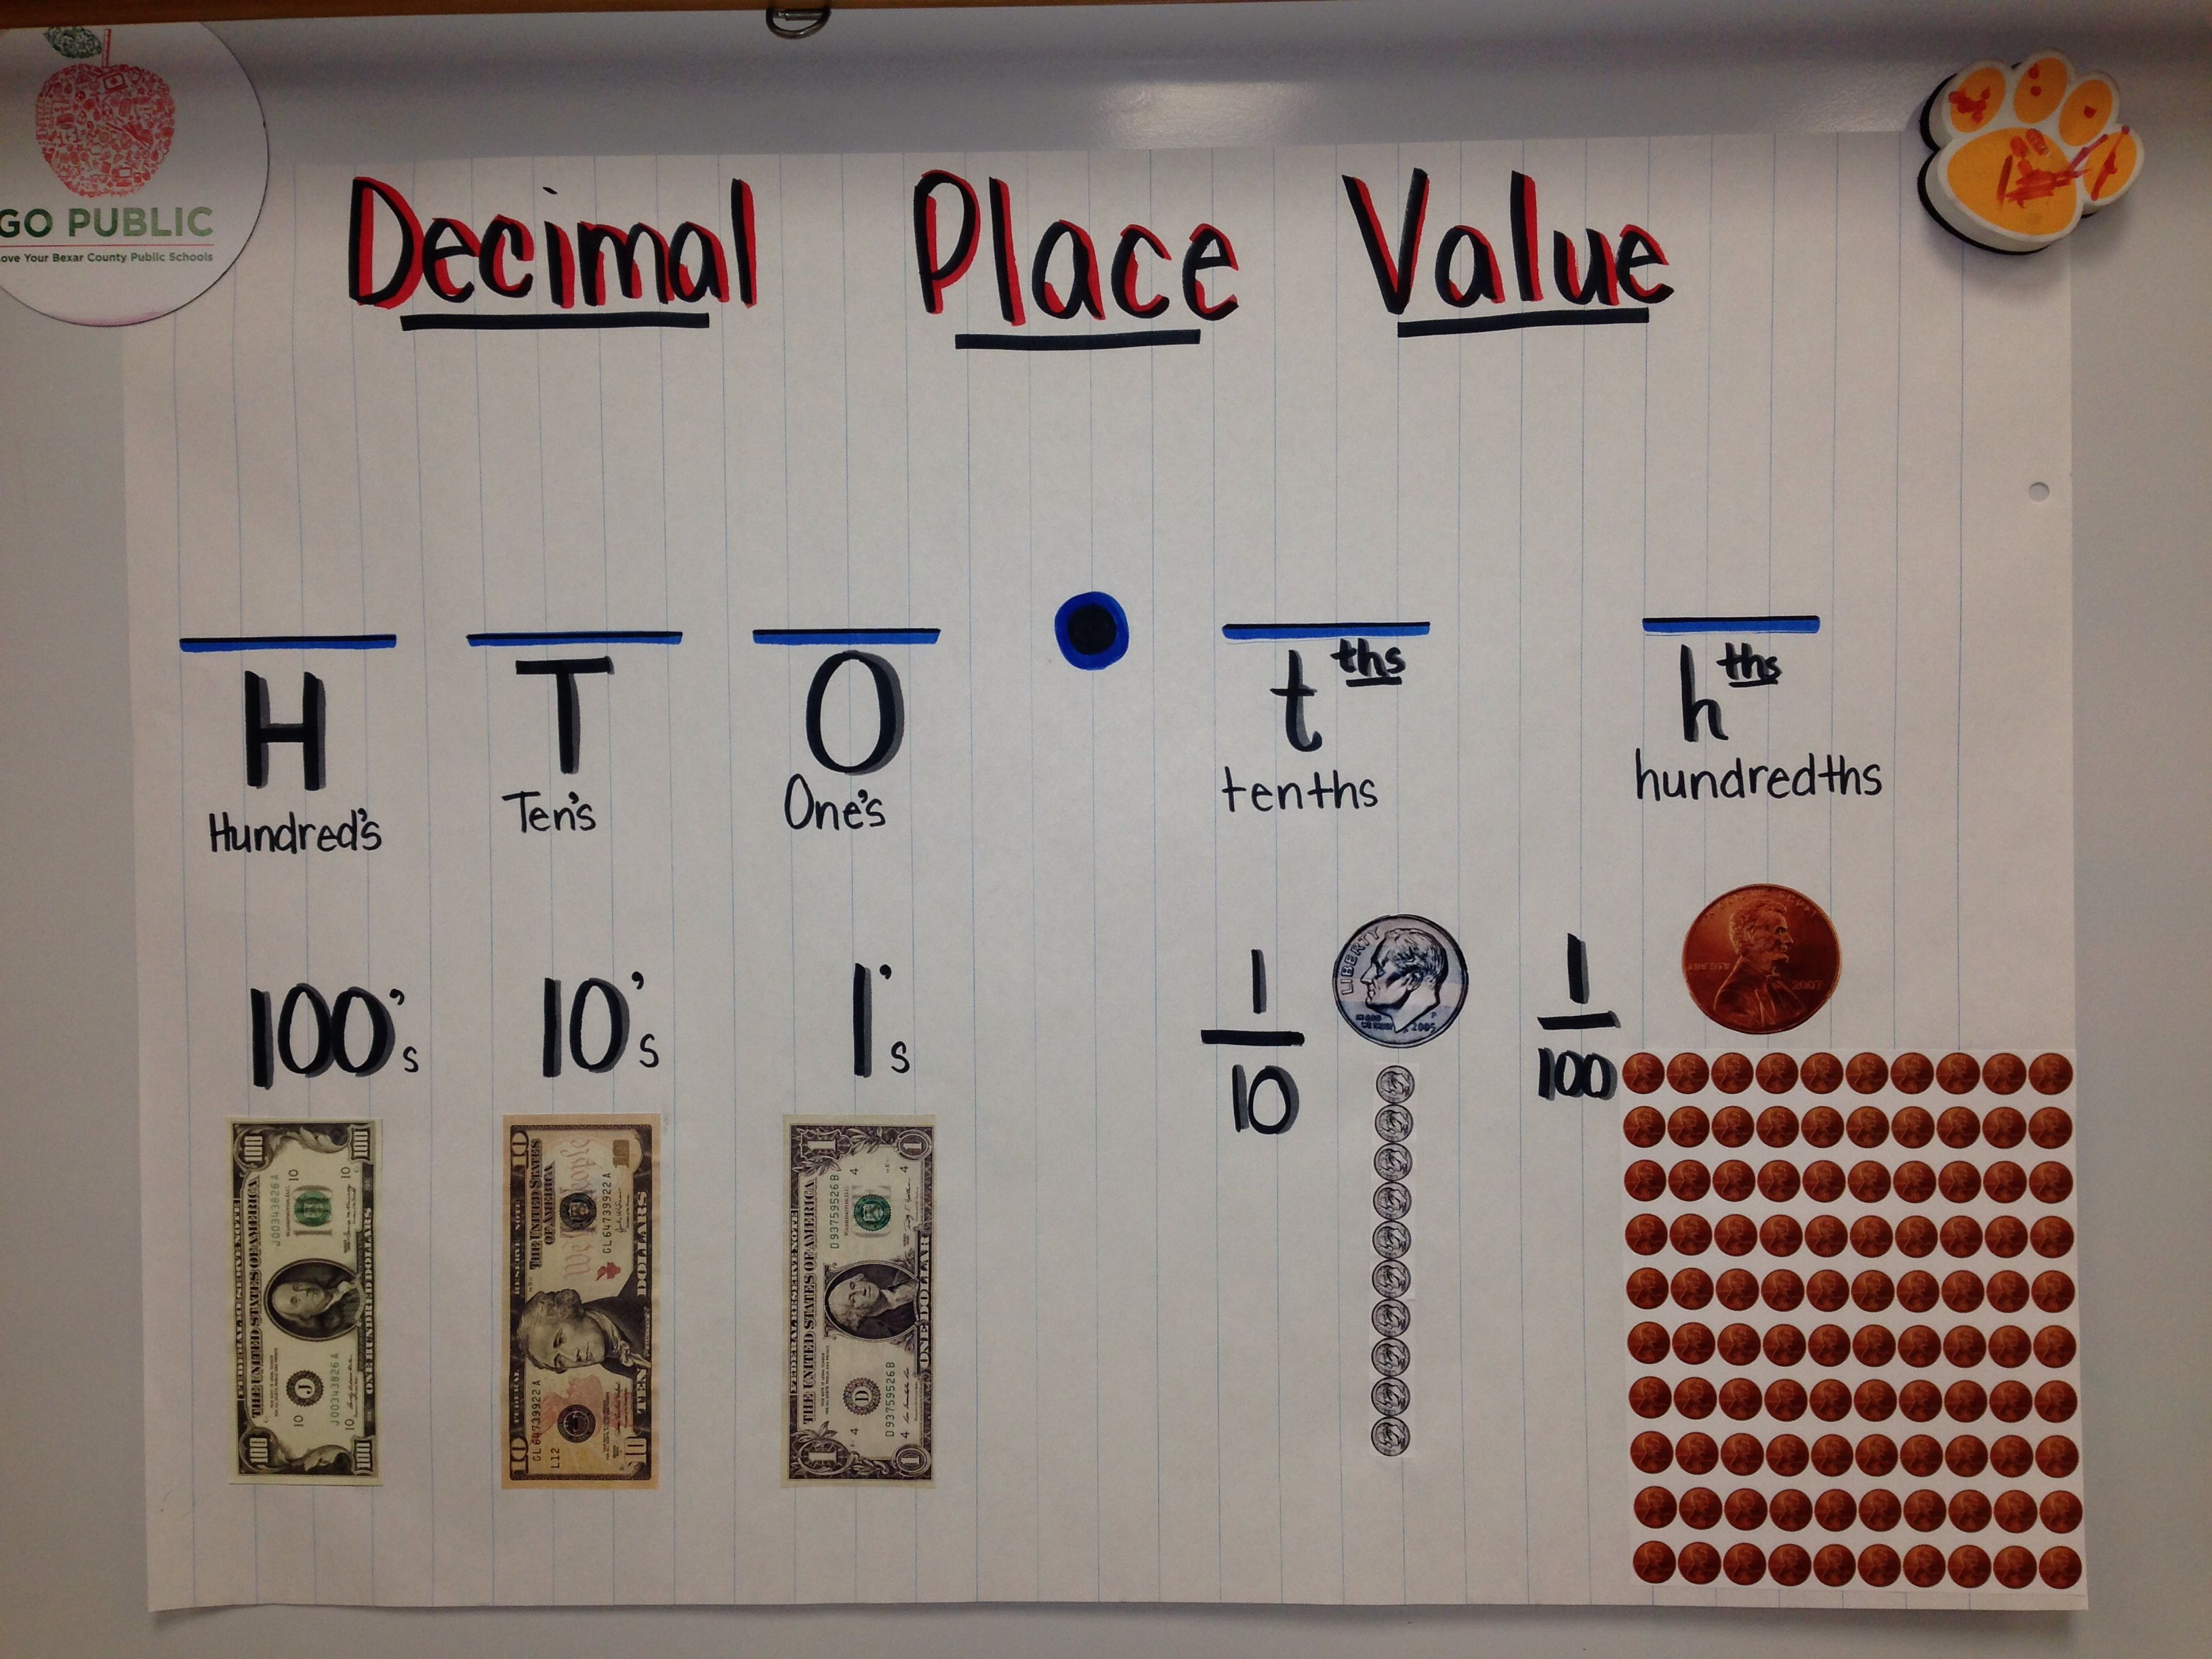 Decimal place value resources teaching ideas decimal places decimal place value resources teaching ideas nvjuhfo Choice Image